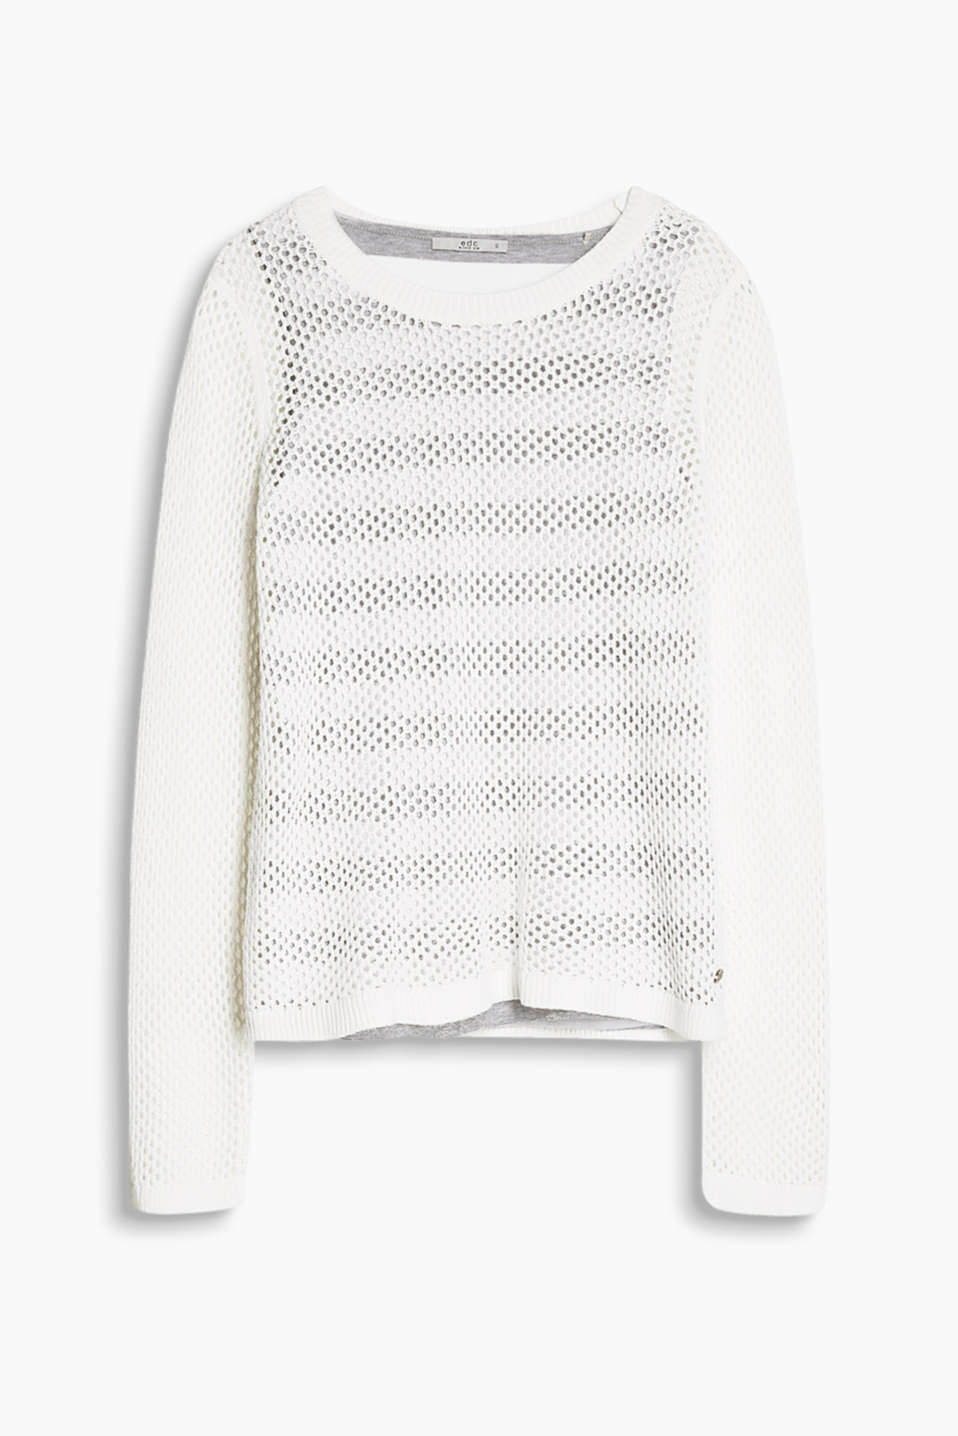 Fashionable layered style: Jumper in a see-through openwork design with a vest made of striped jersey